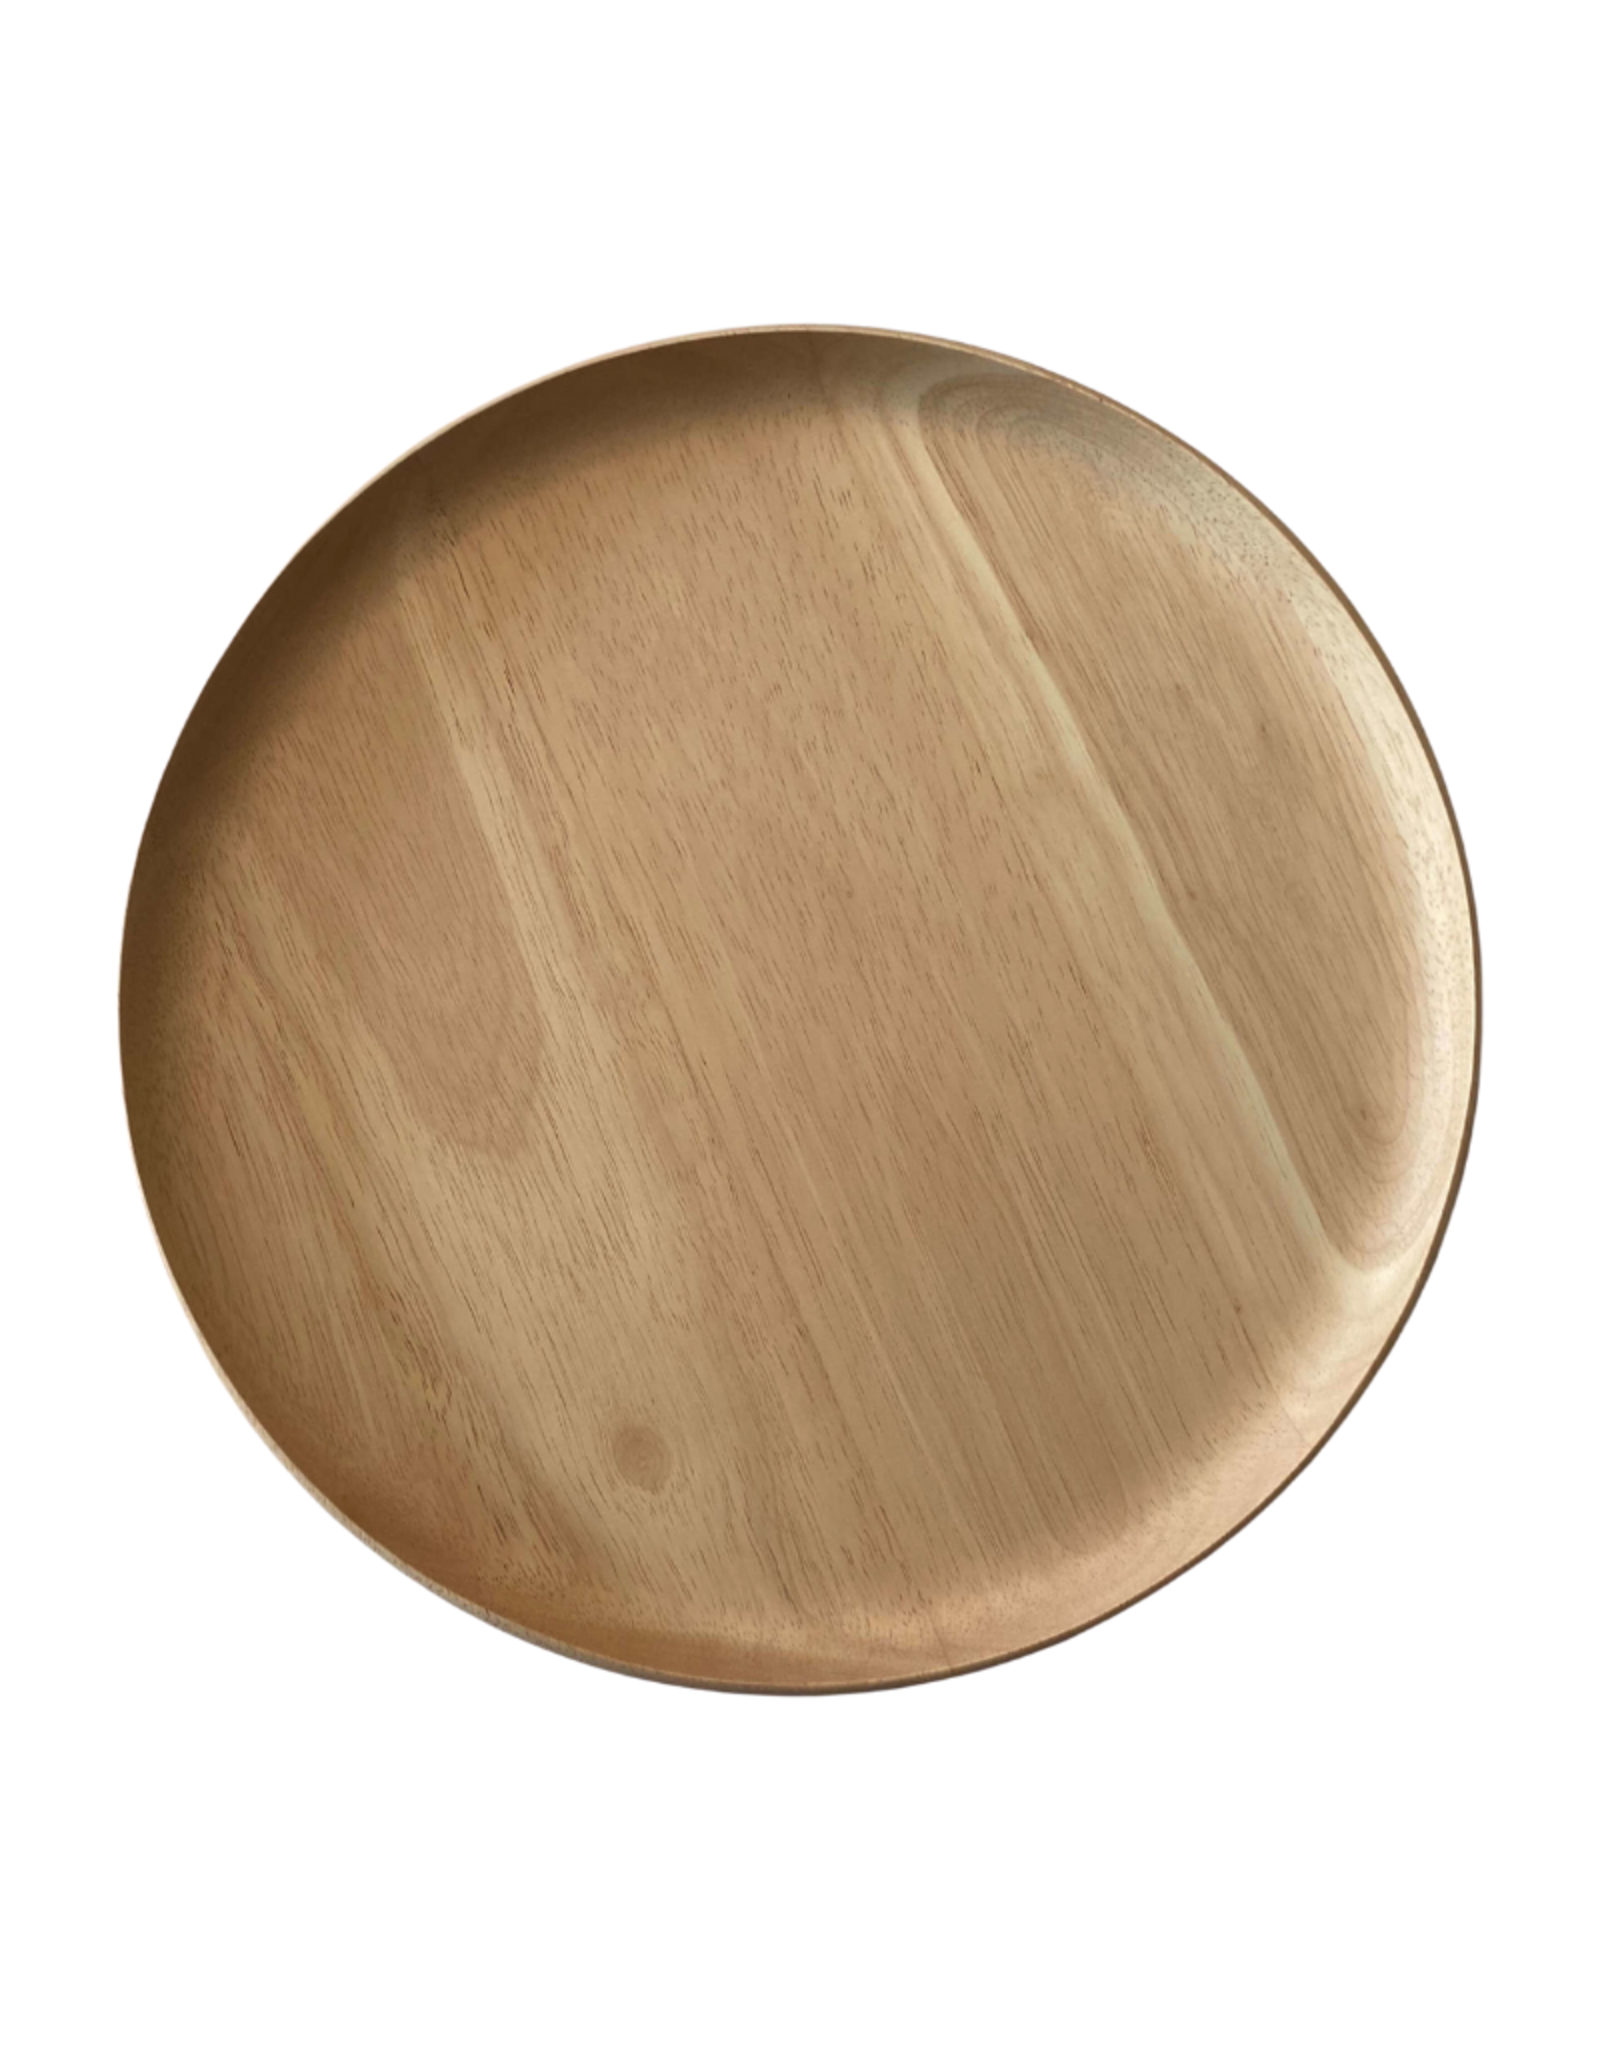 Yod Co Round Serving Tray Rubber Wood Perch